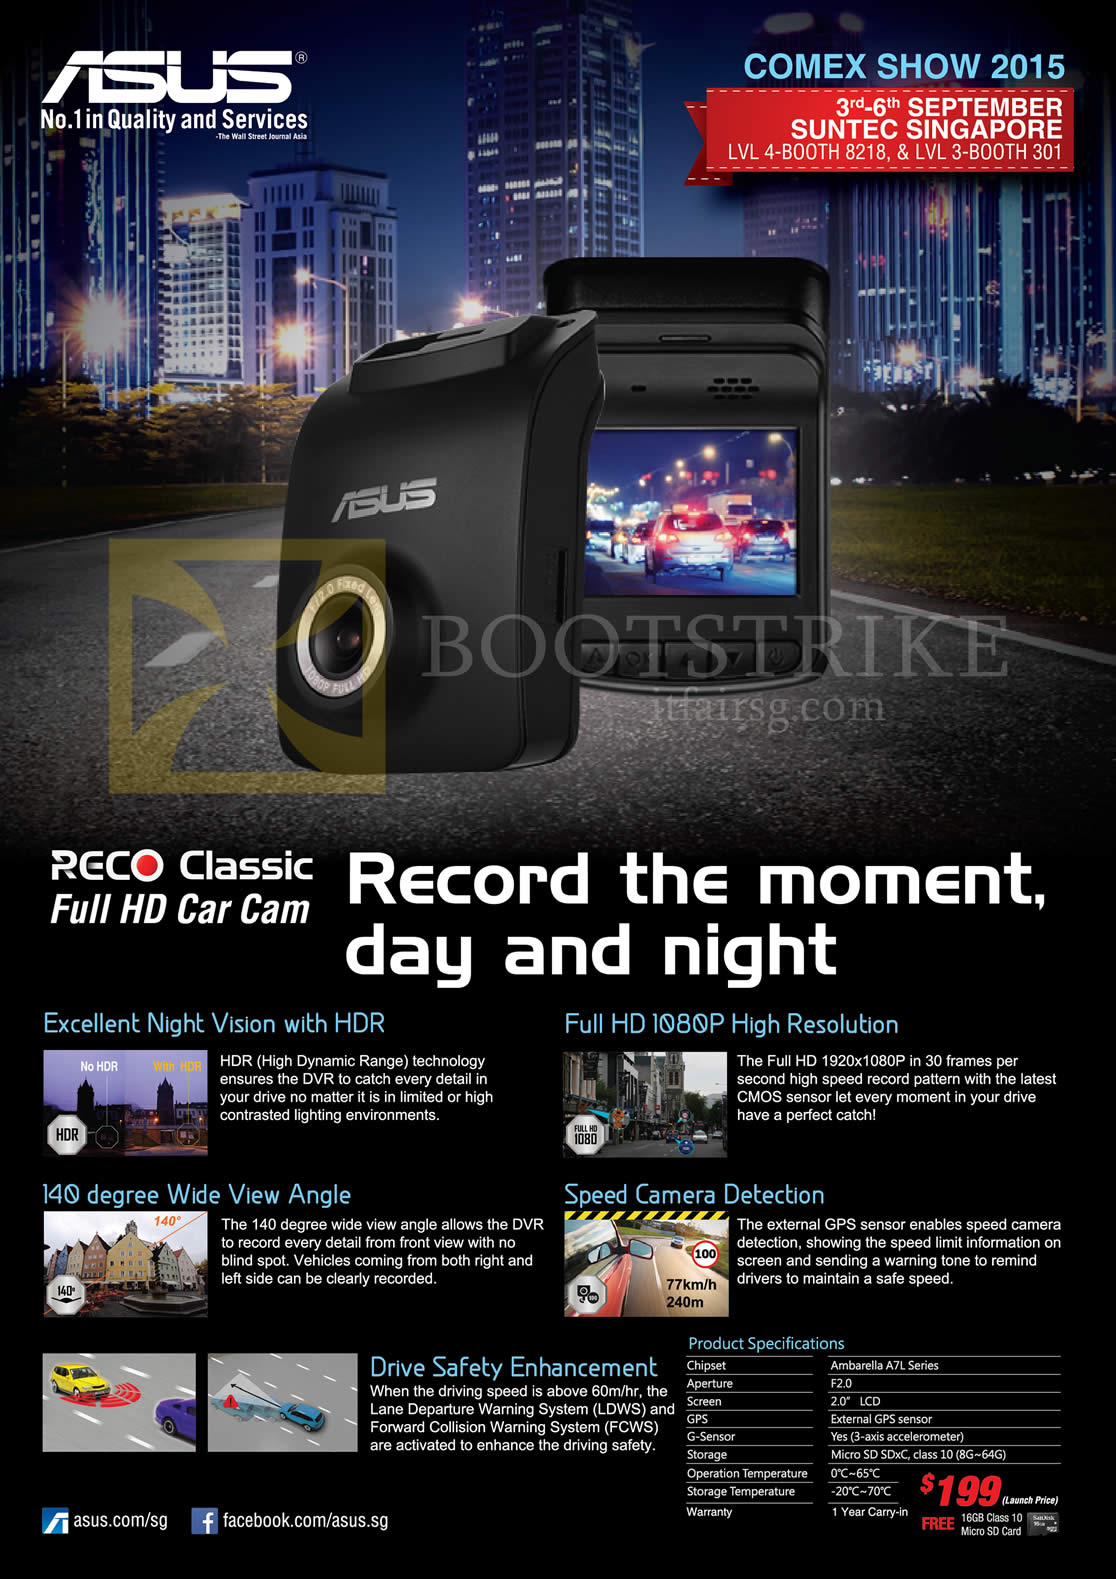 COMEX 2015 price list image brochure of ASUS Reco Classic Car Camera Driving Recorder